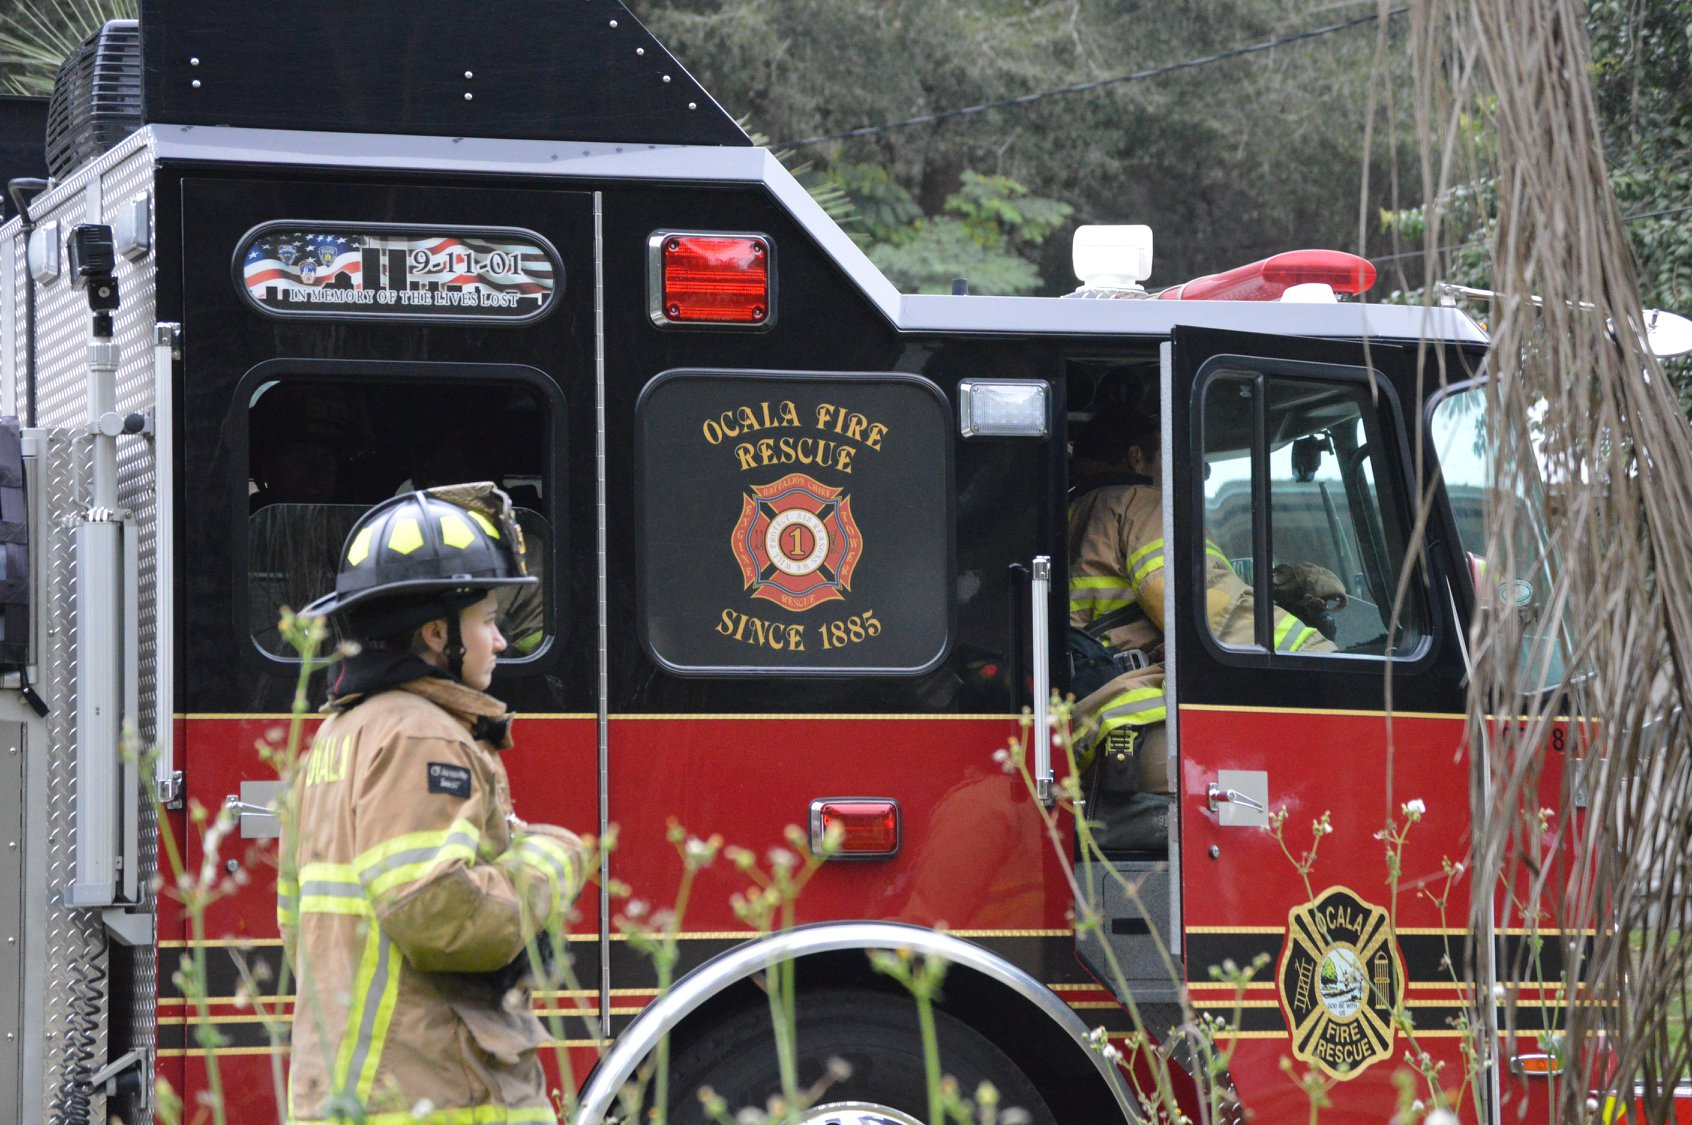 ocala news, ocala post, ocala fire rescue, marion county news